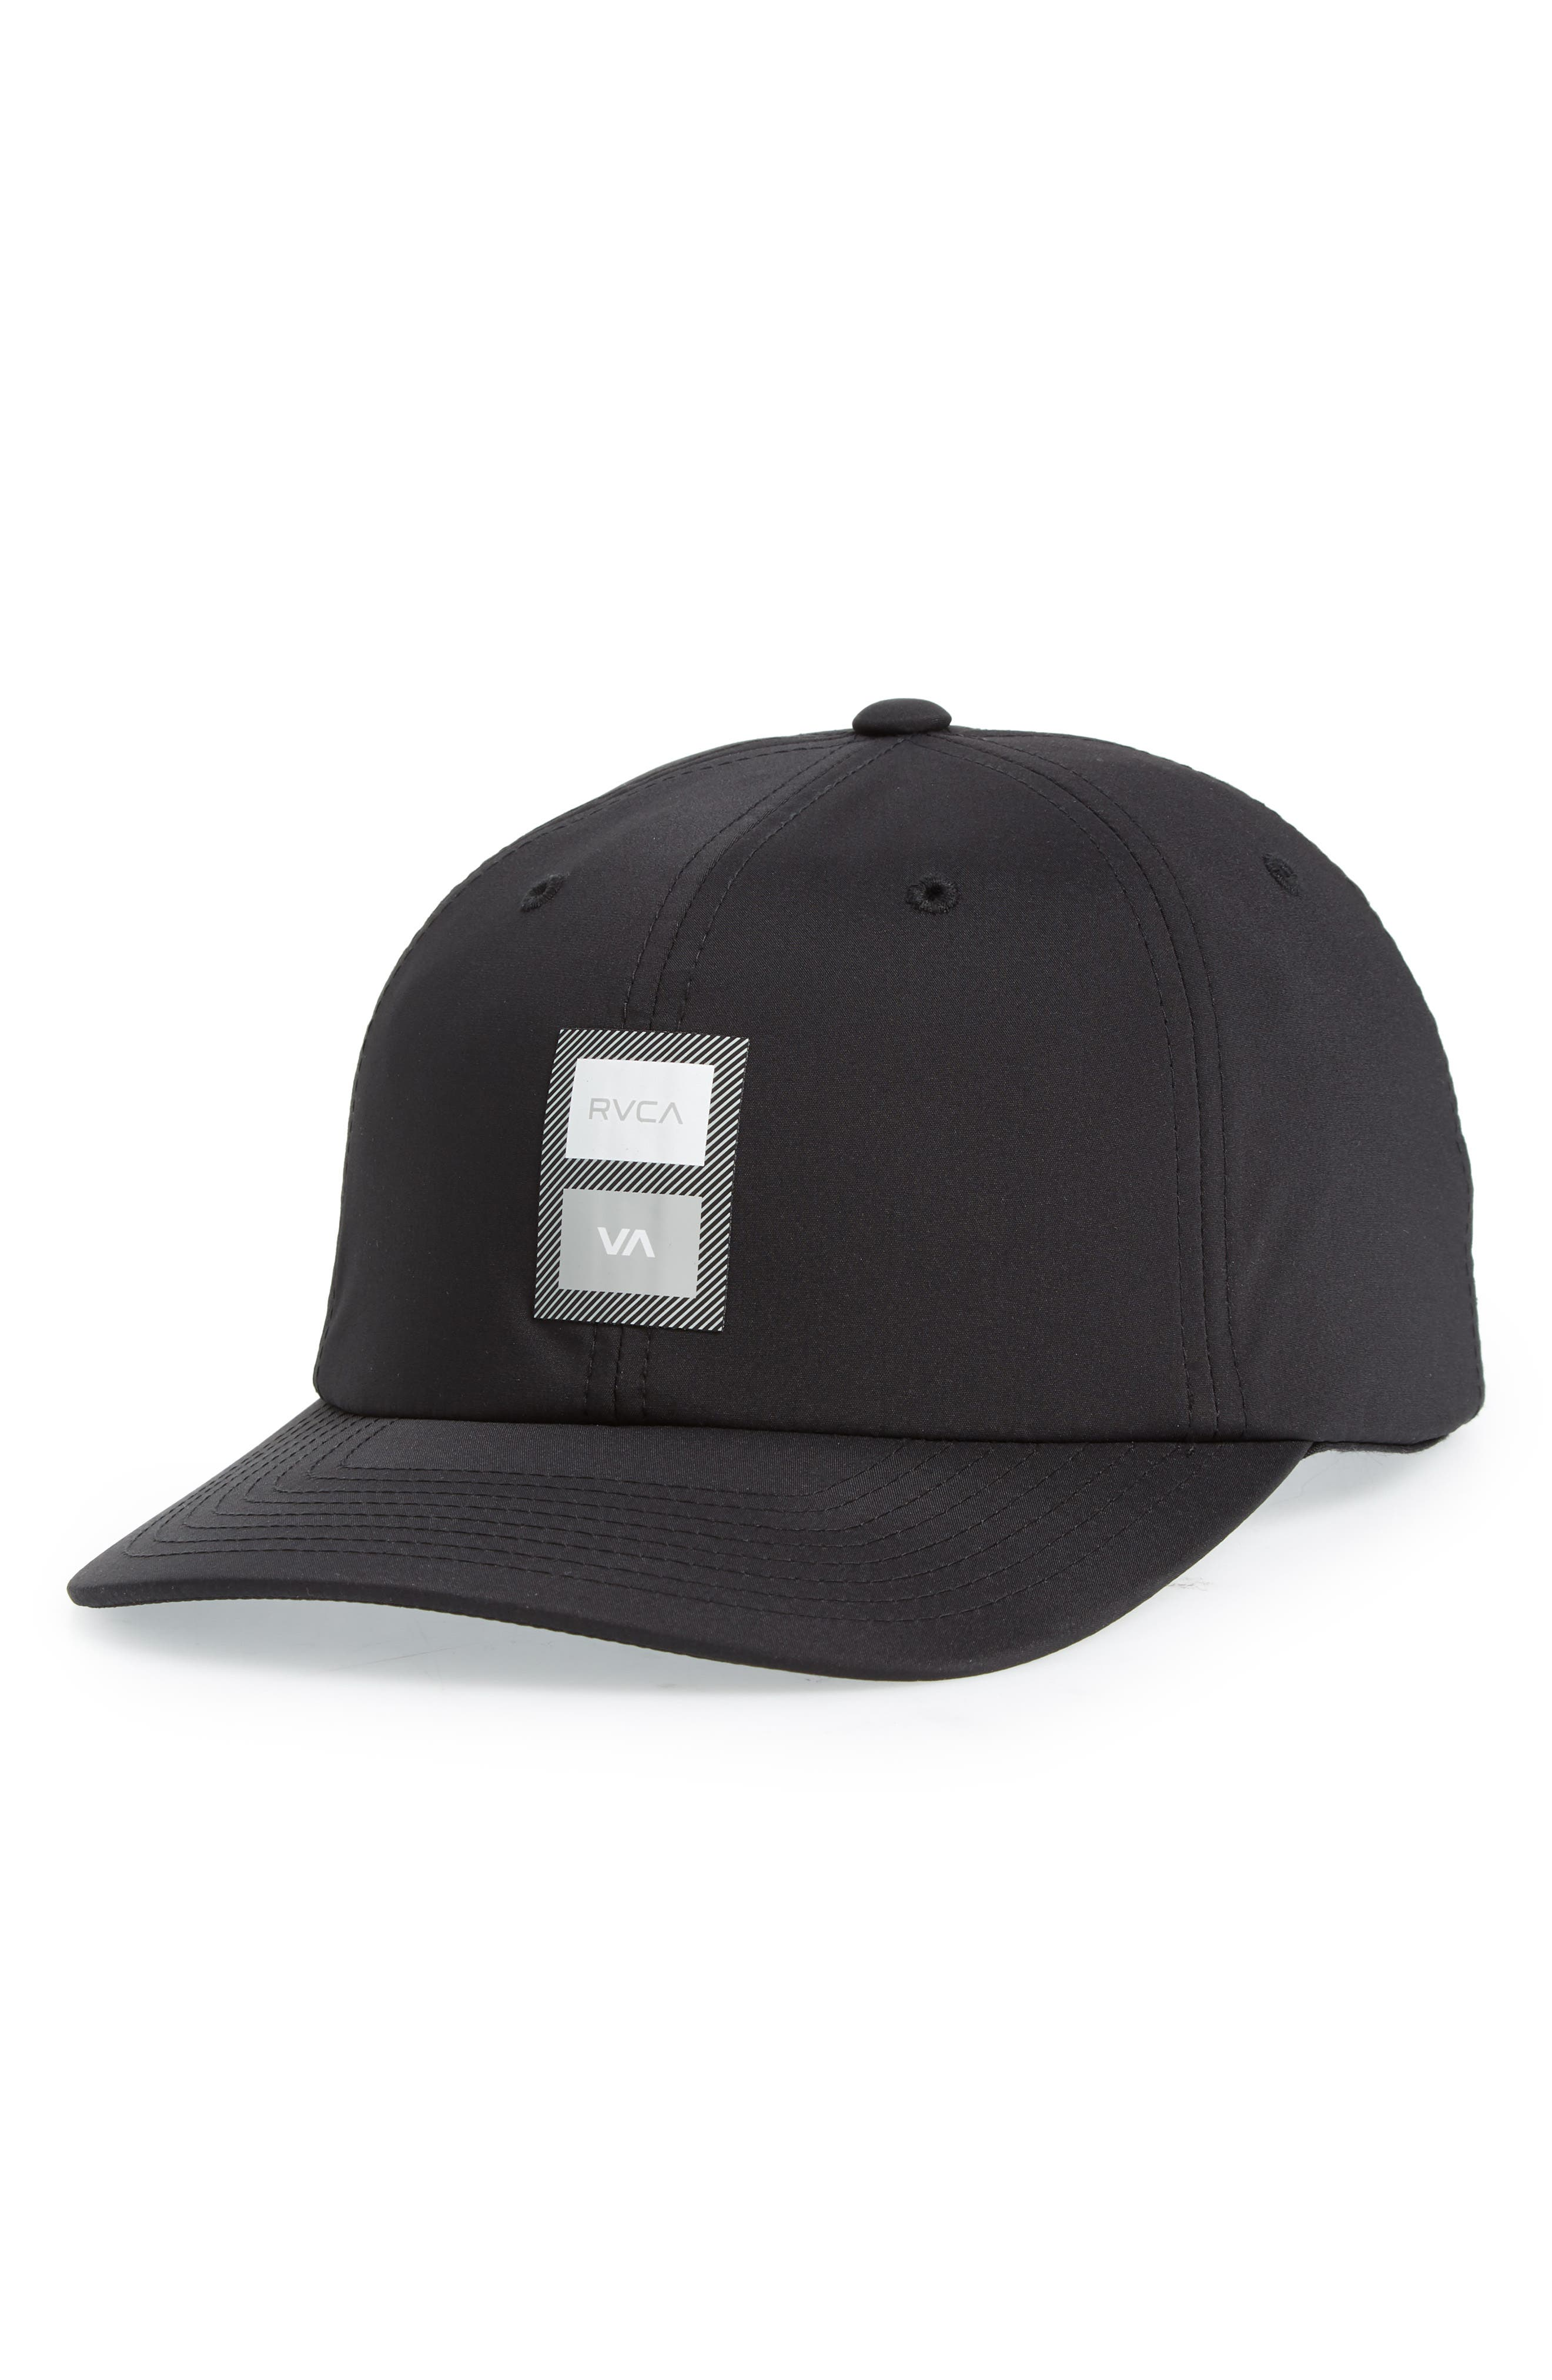 5aa0a246321fc Men s RVCA Black Hats